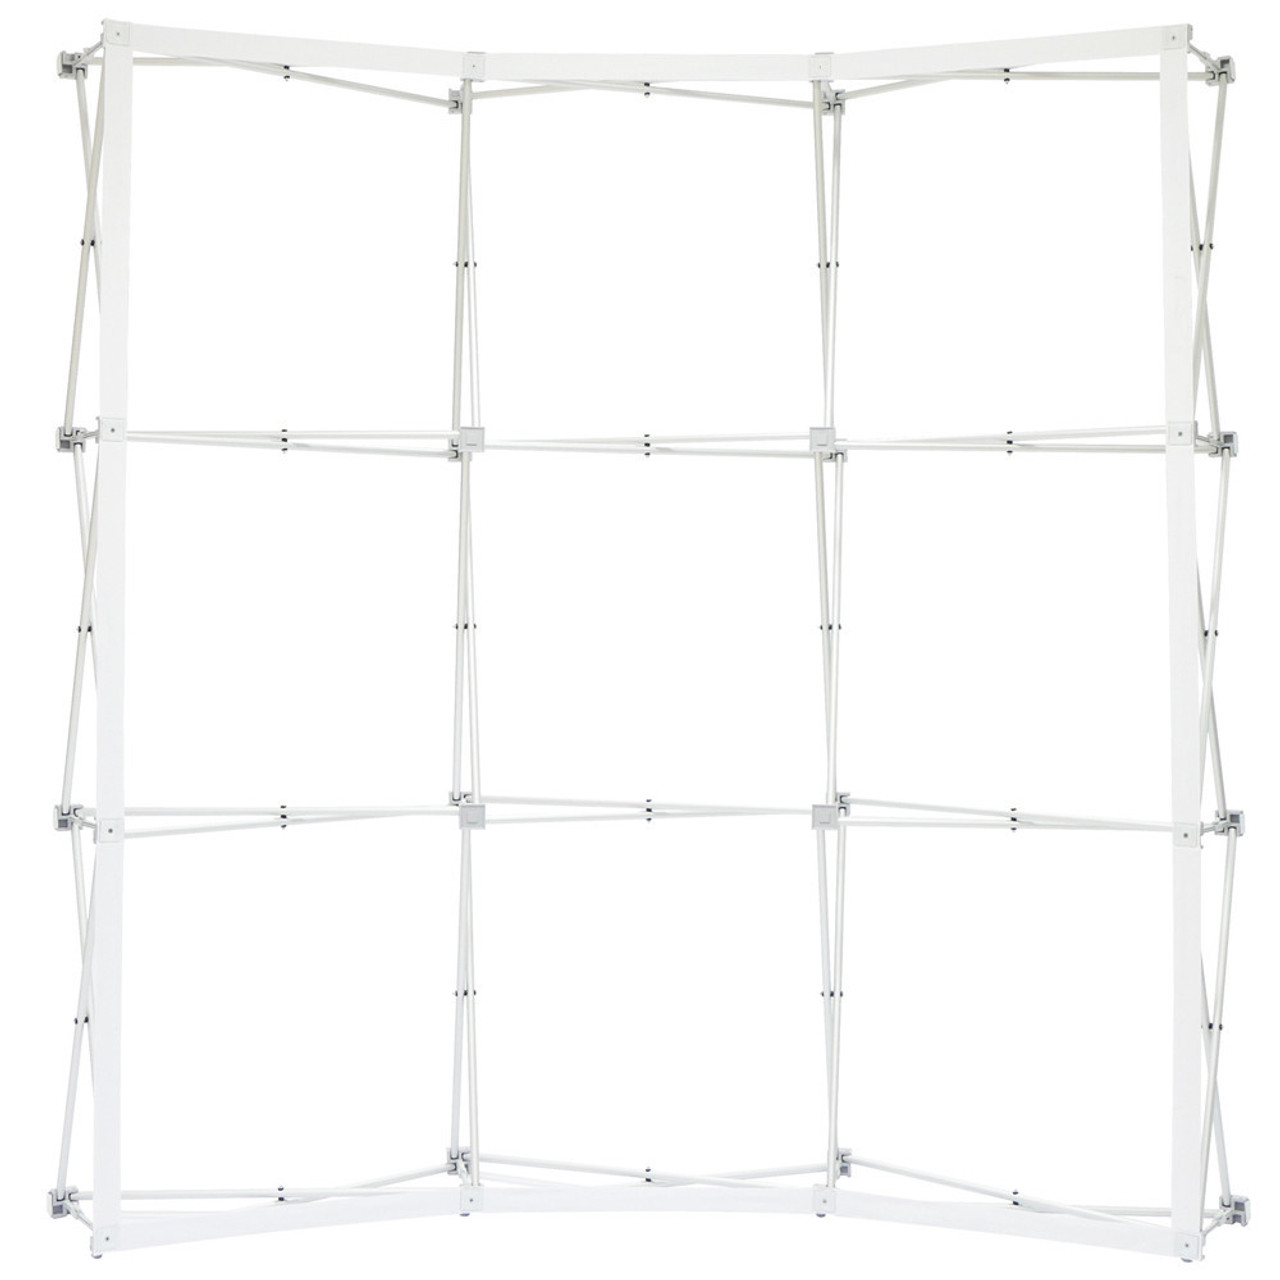 Frame of curved 8 ft RPL